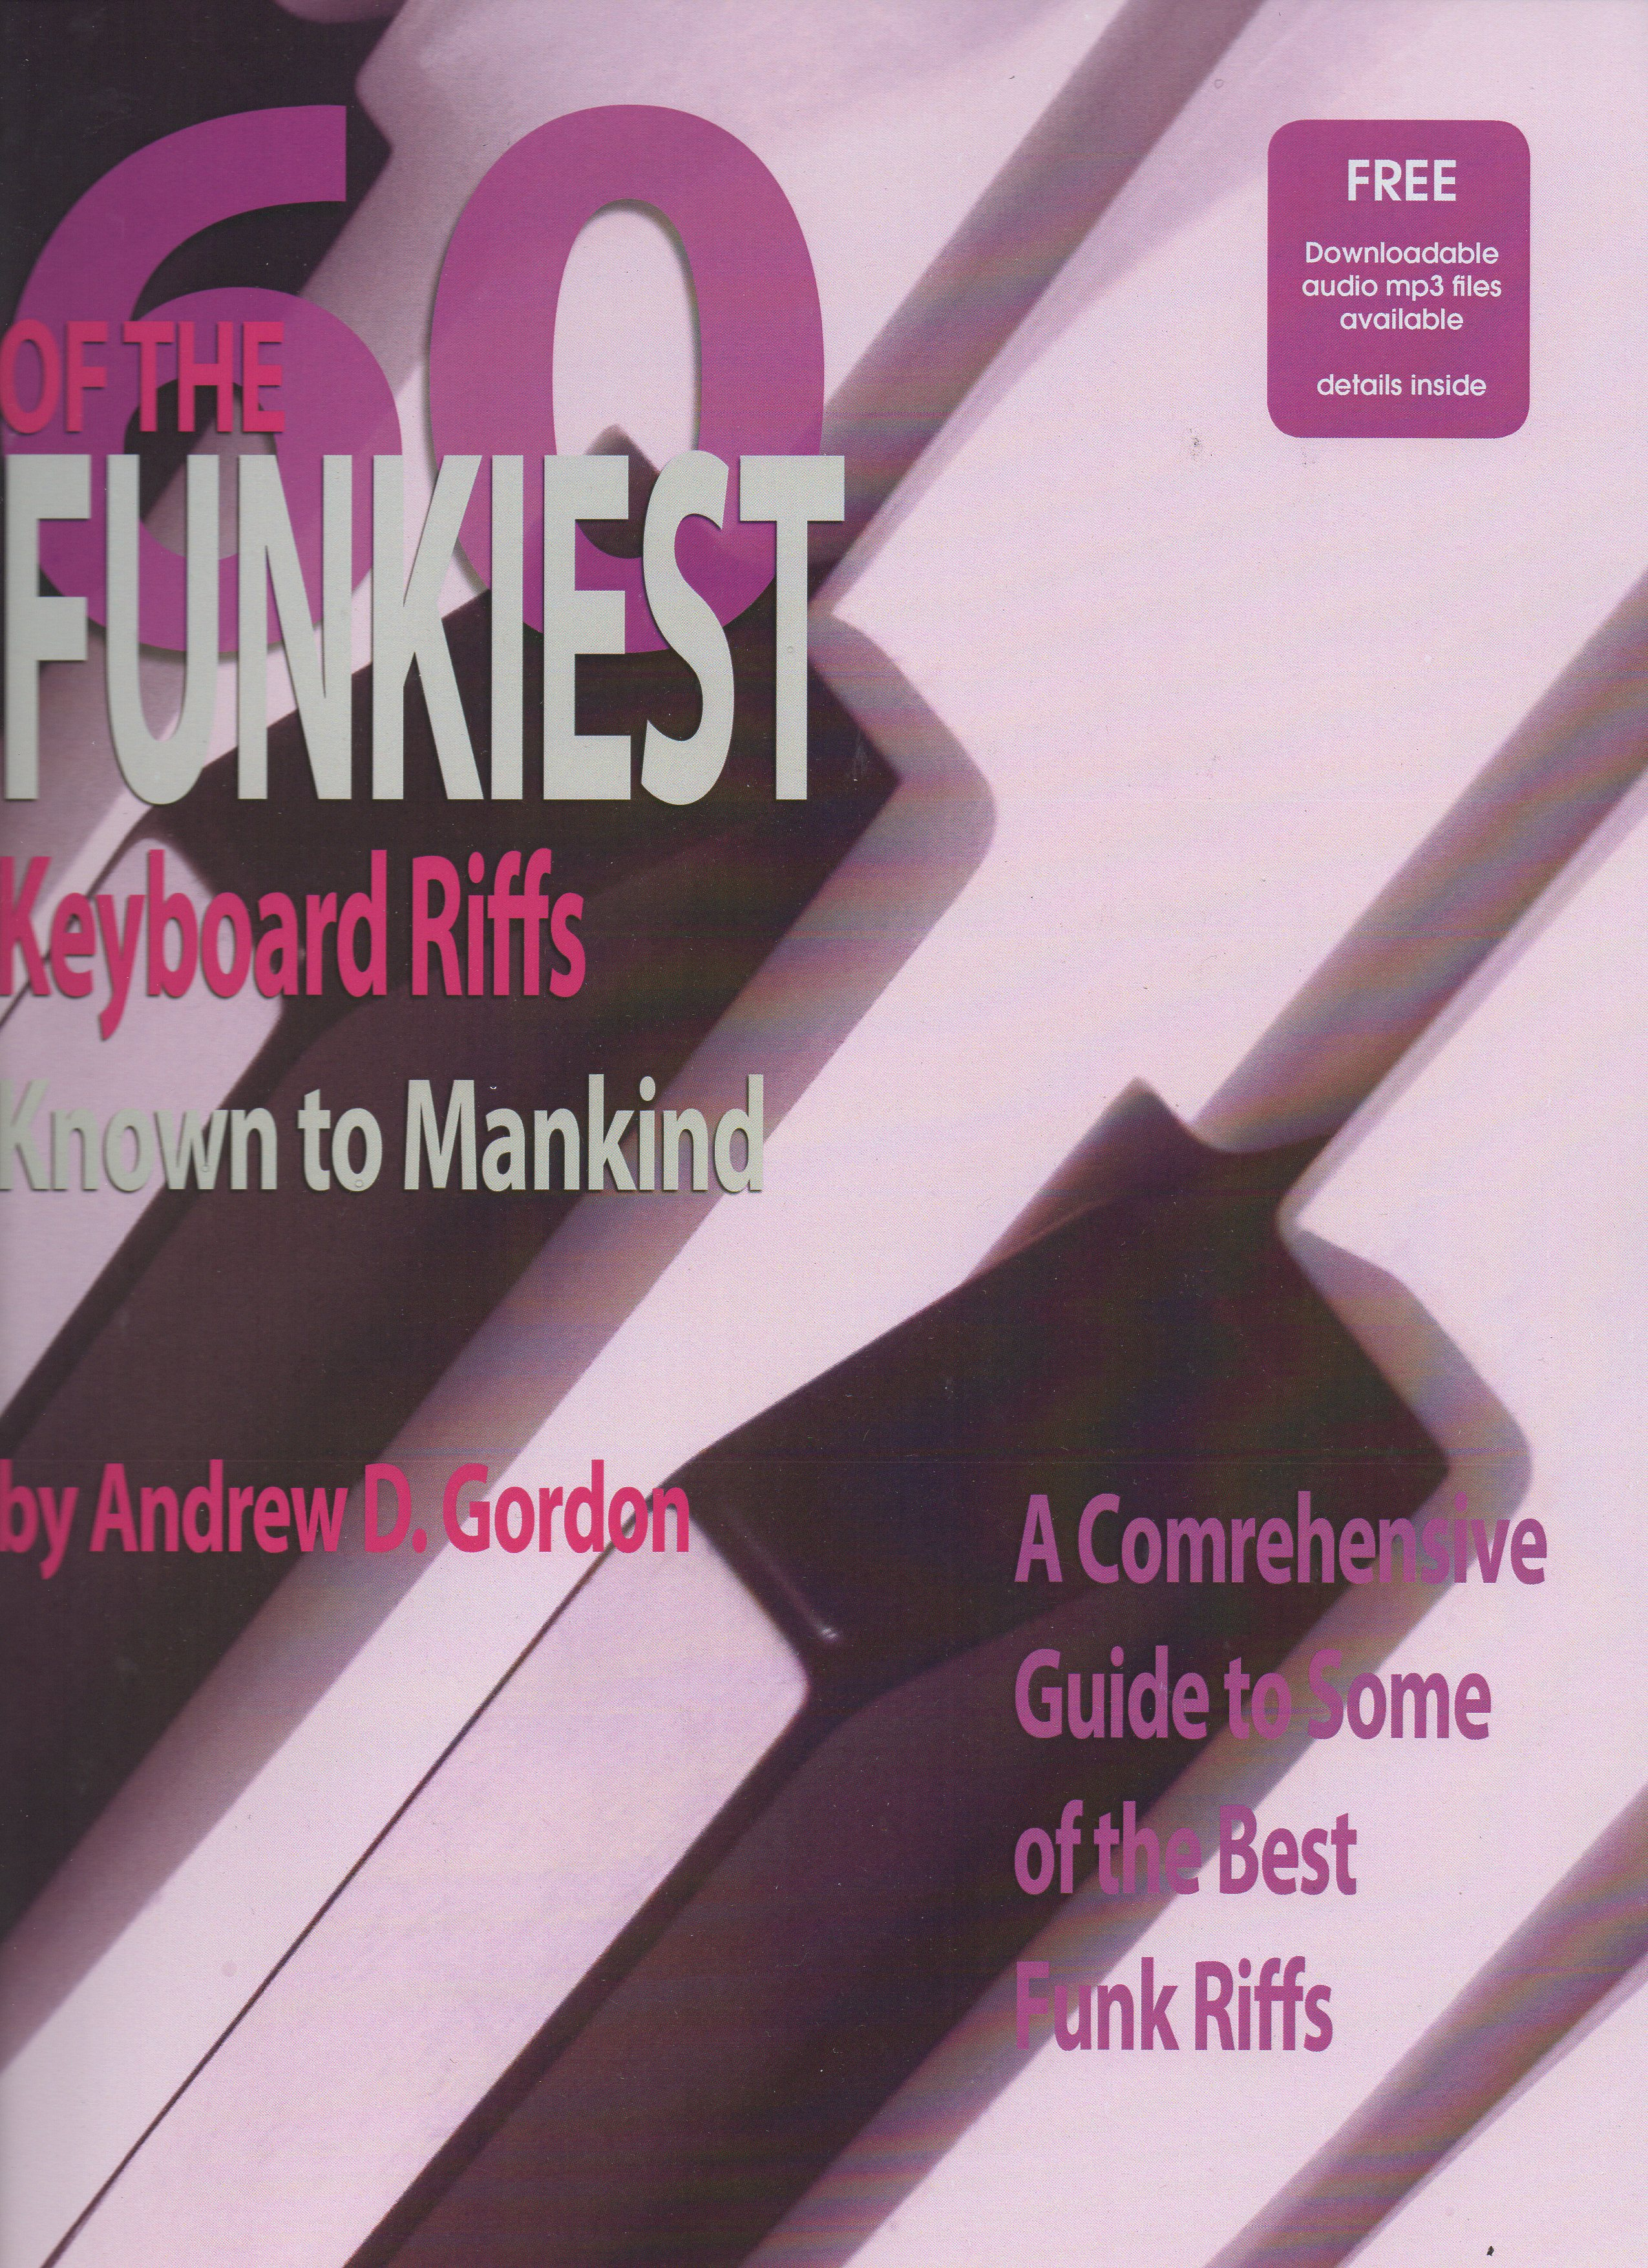 60 Of The Funkiest Keyboard Riffs Known To Mankind: Piano or Keyboard: